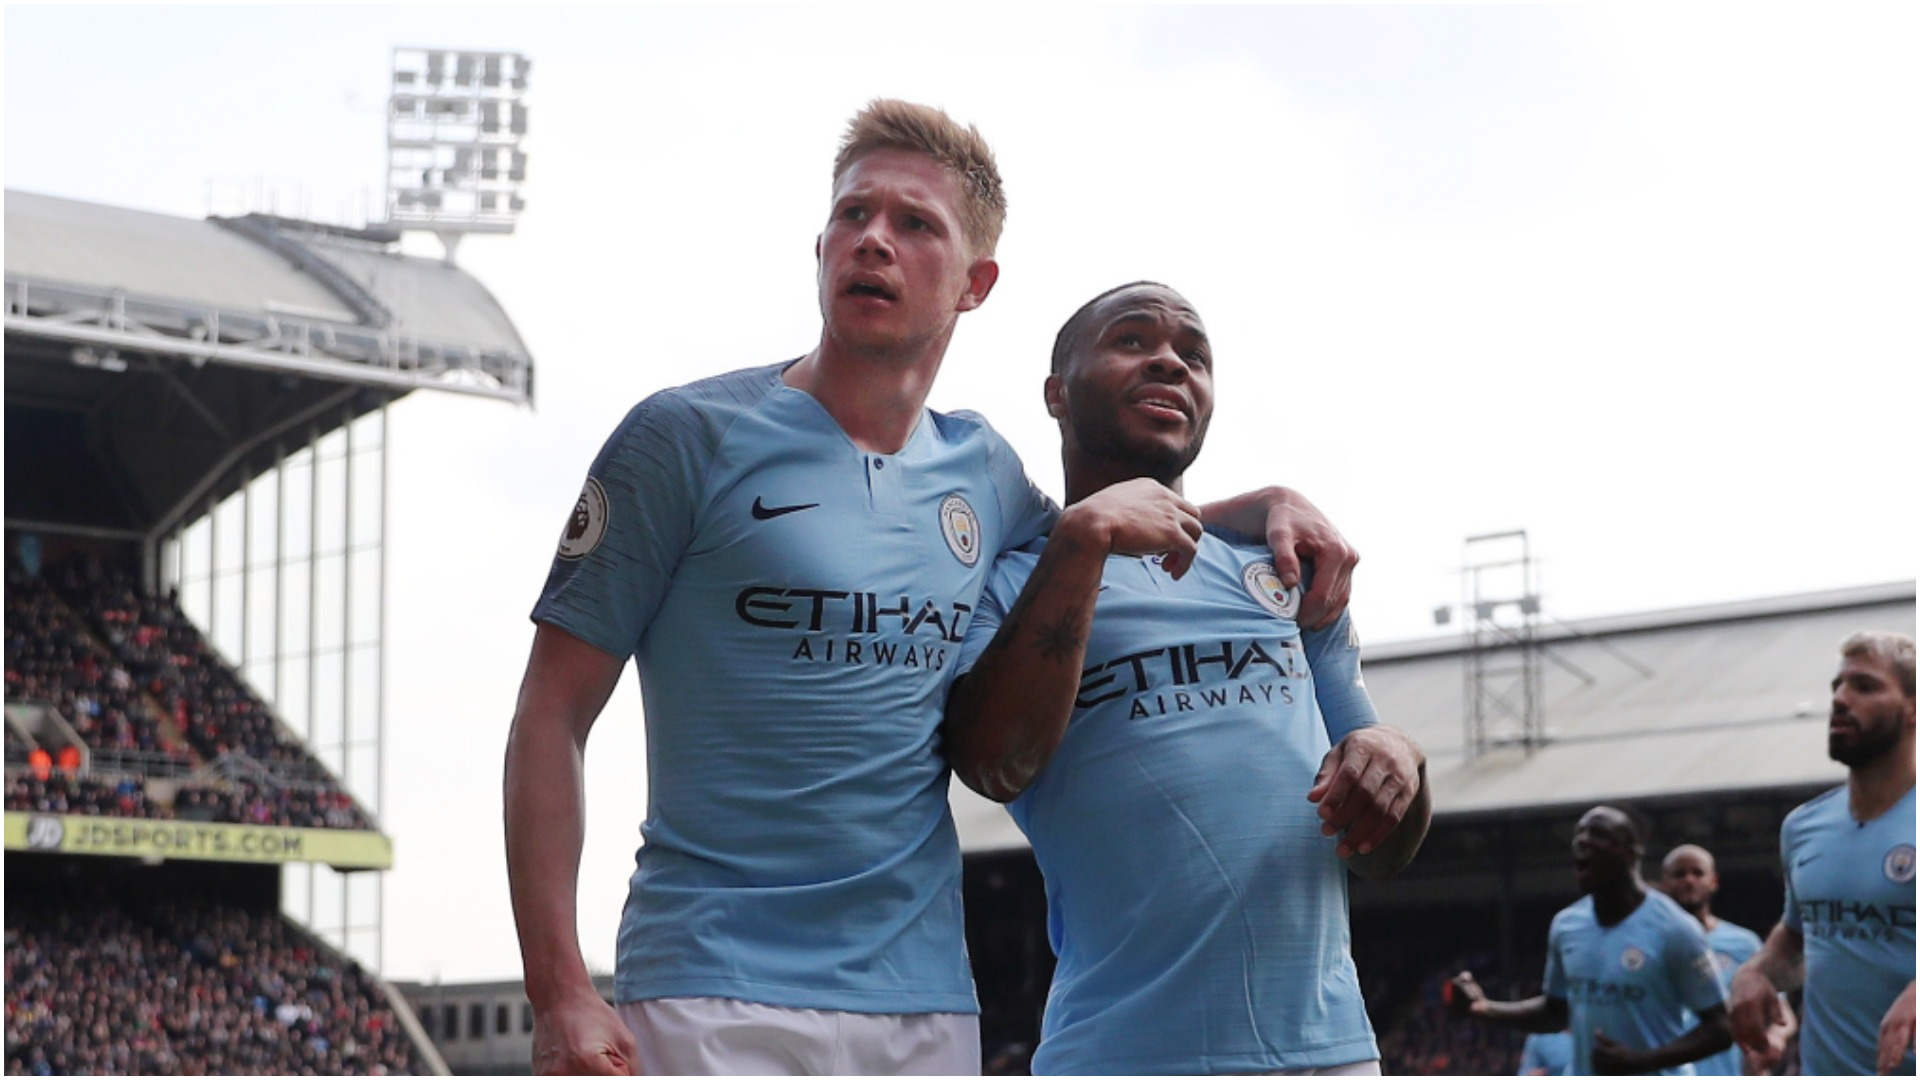 'They'll play for Real Madrid if they want to' - Eriksson still hopes Sterling and De Bruyne commit to Manchester City